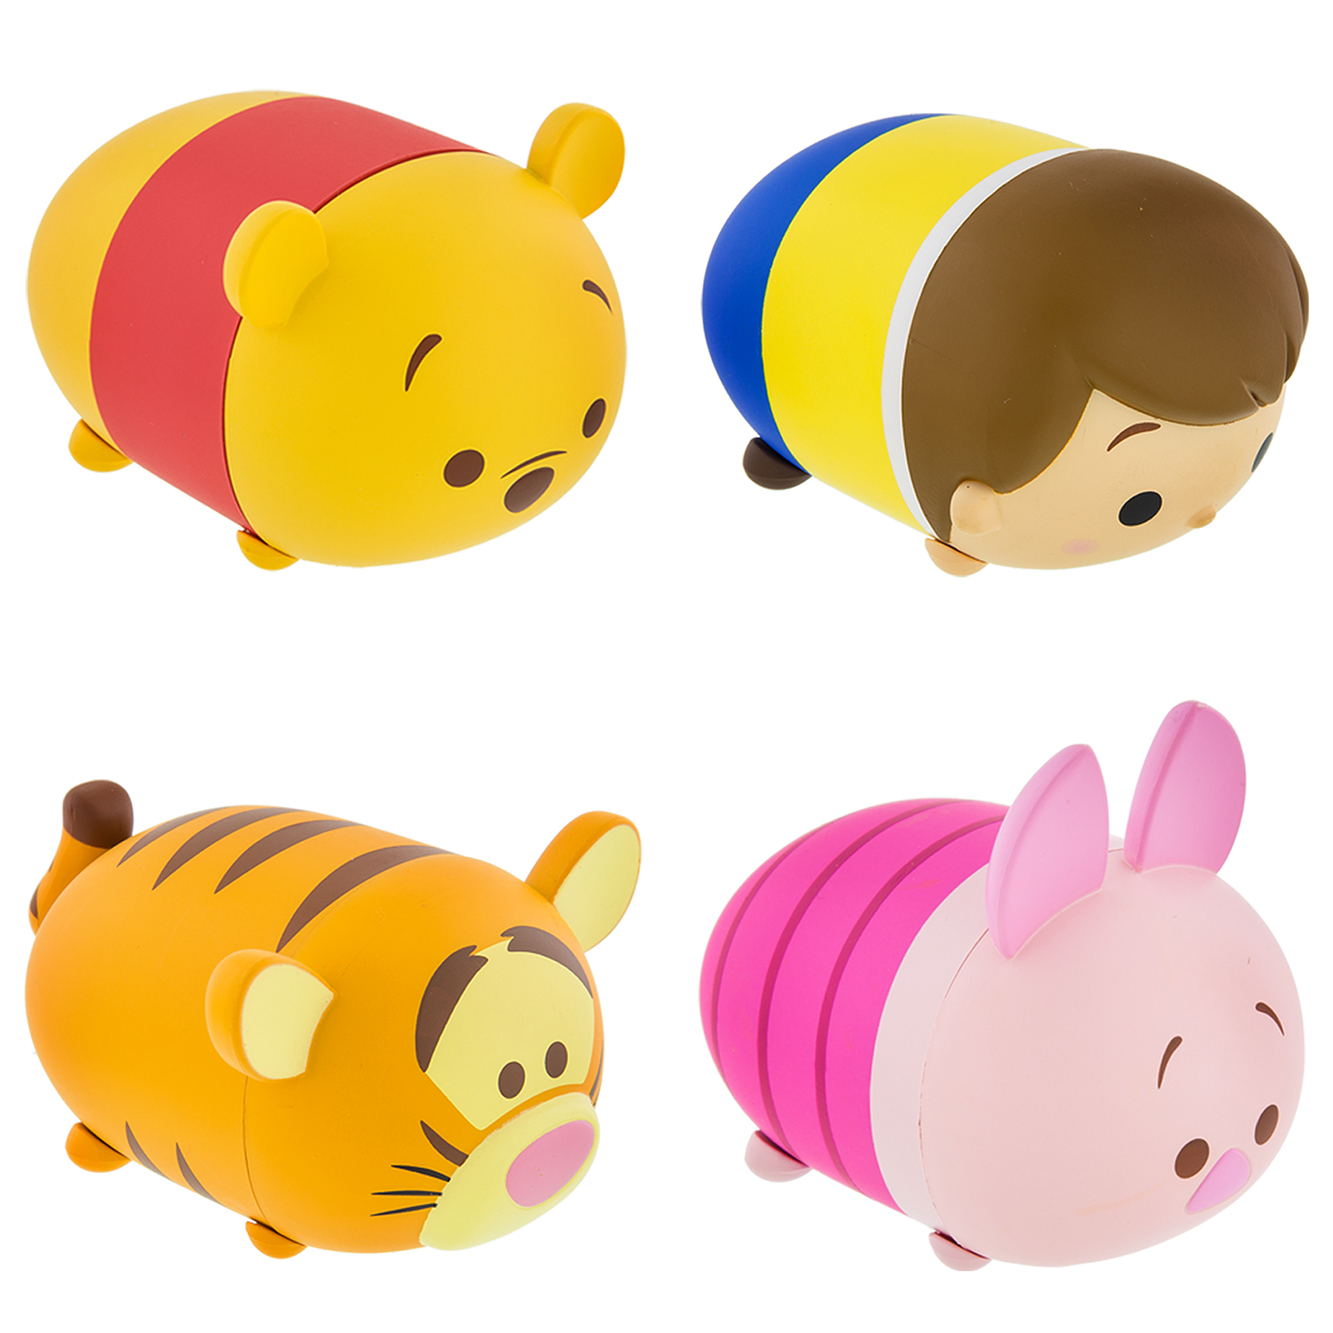 Winnie The Pooh And Friends Tsum Tsum Vinyls Coming Soon